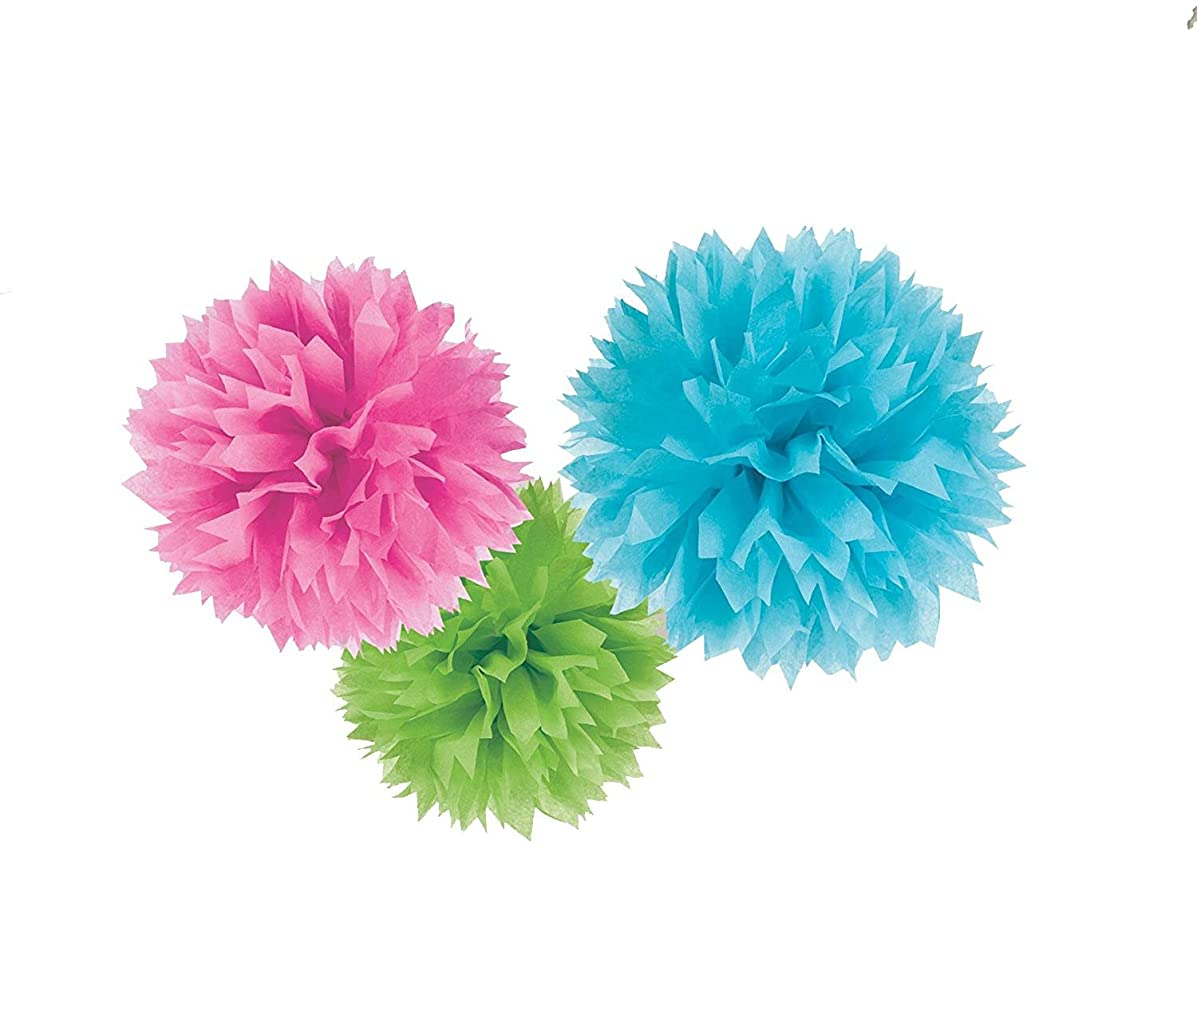 "S-shine 16"" Poms Large Fluffy Pom Pom Hanging Decorations Tissue Paper Pom Flowers For Celebrate Decoration Fluffy Hanging Lantern Party/Wedding Blooms Ball (Lime Rose Blue 3pcs assemble)"